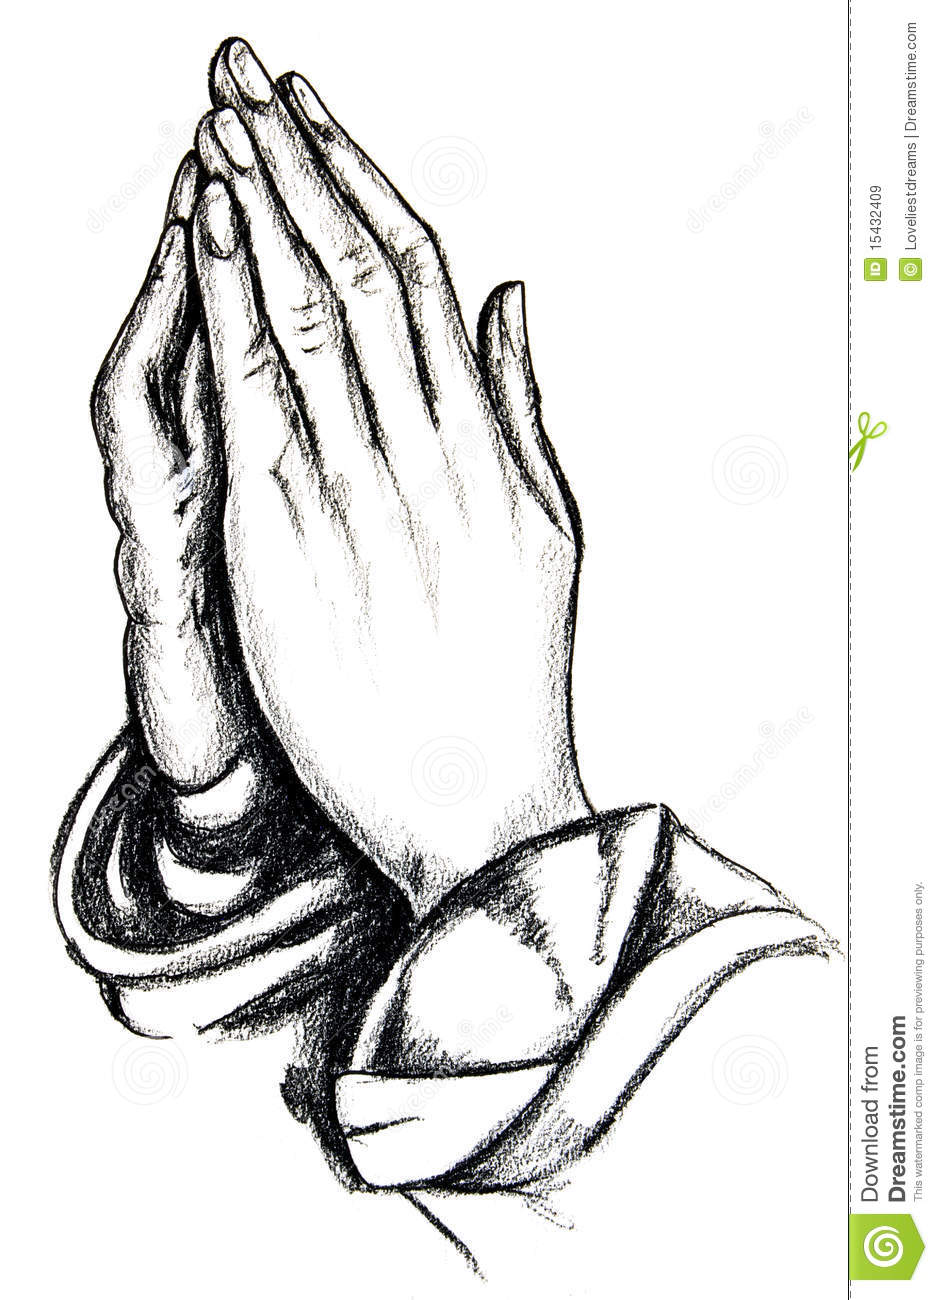 Praying Hands Clip Art Free Download.